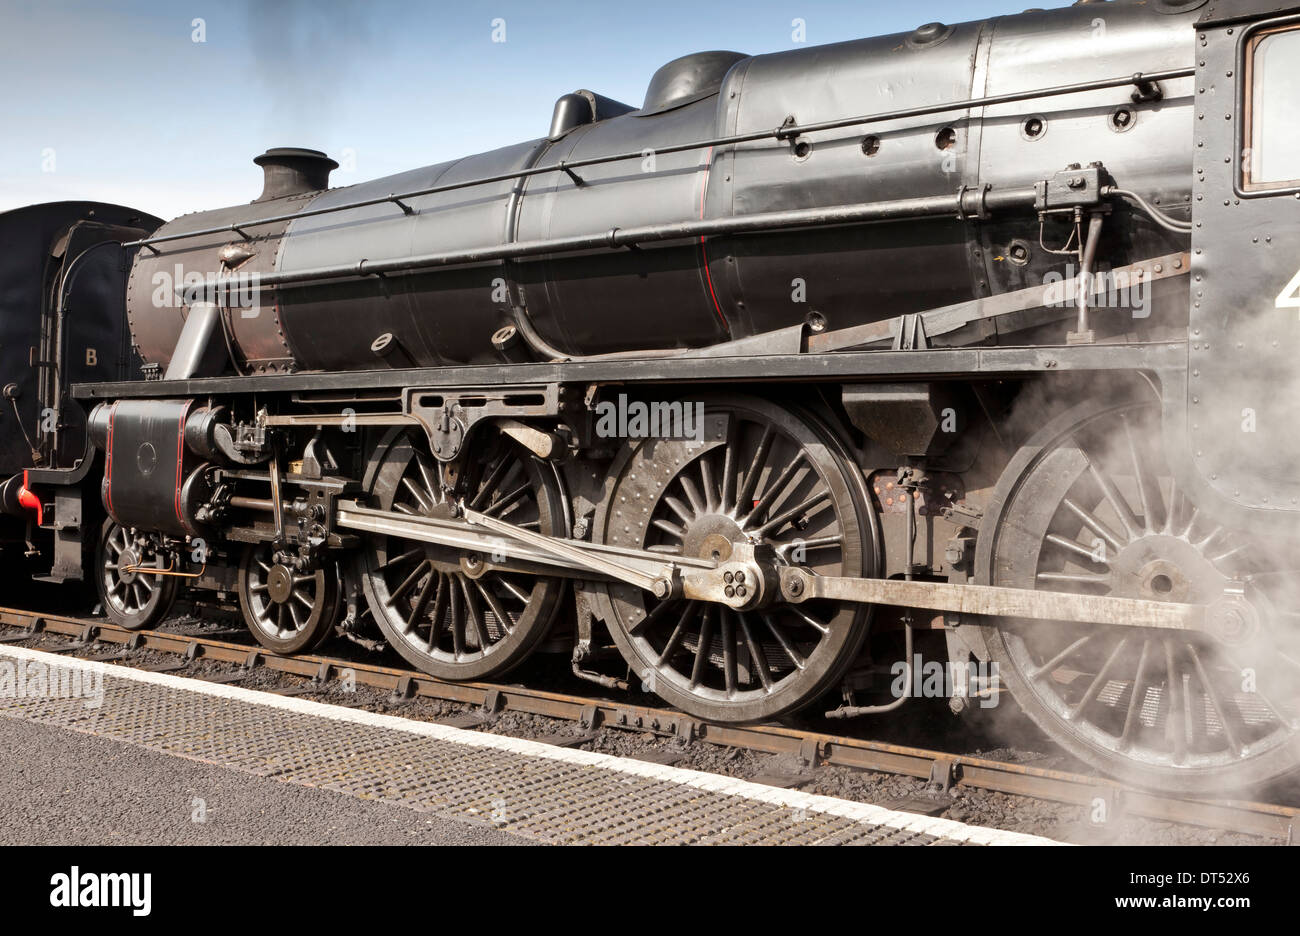 A steam train increasing steam ready to depart from a station - Stock Image